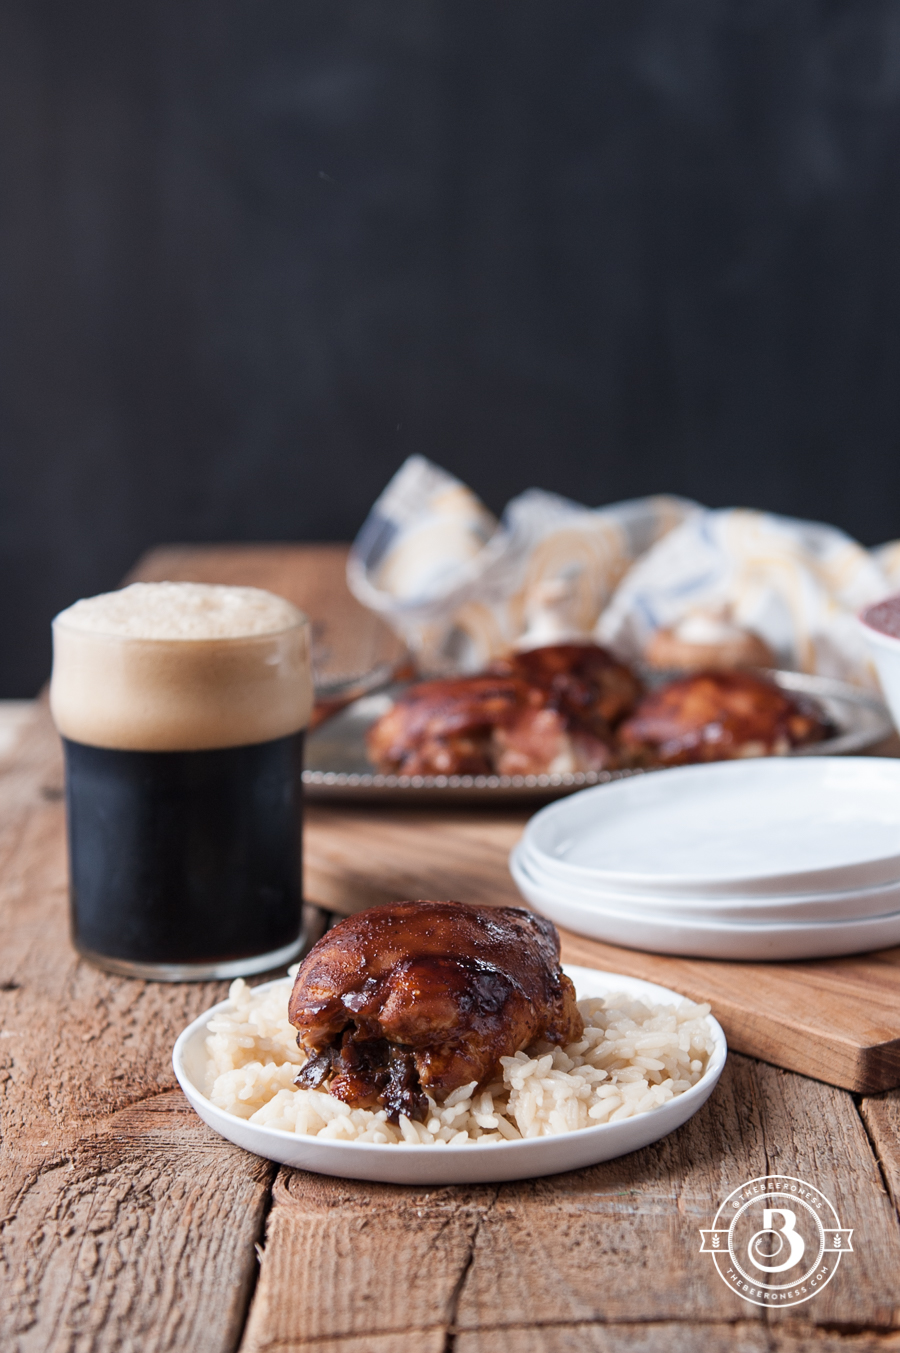 Mushroom Stuffed Hoisin Stout Glazed Chicken Thighs2